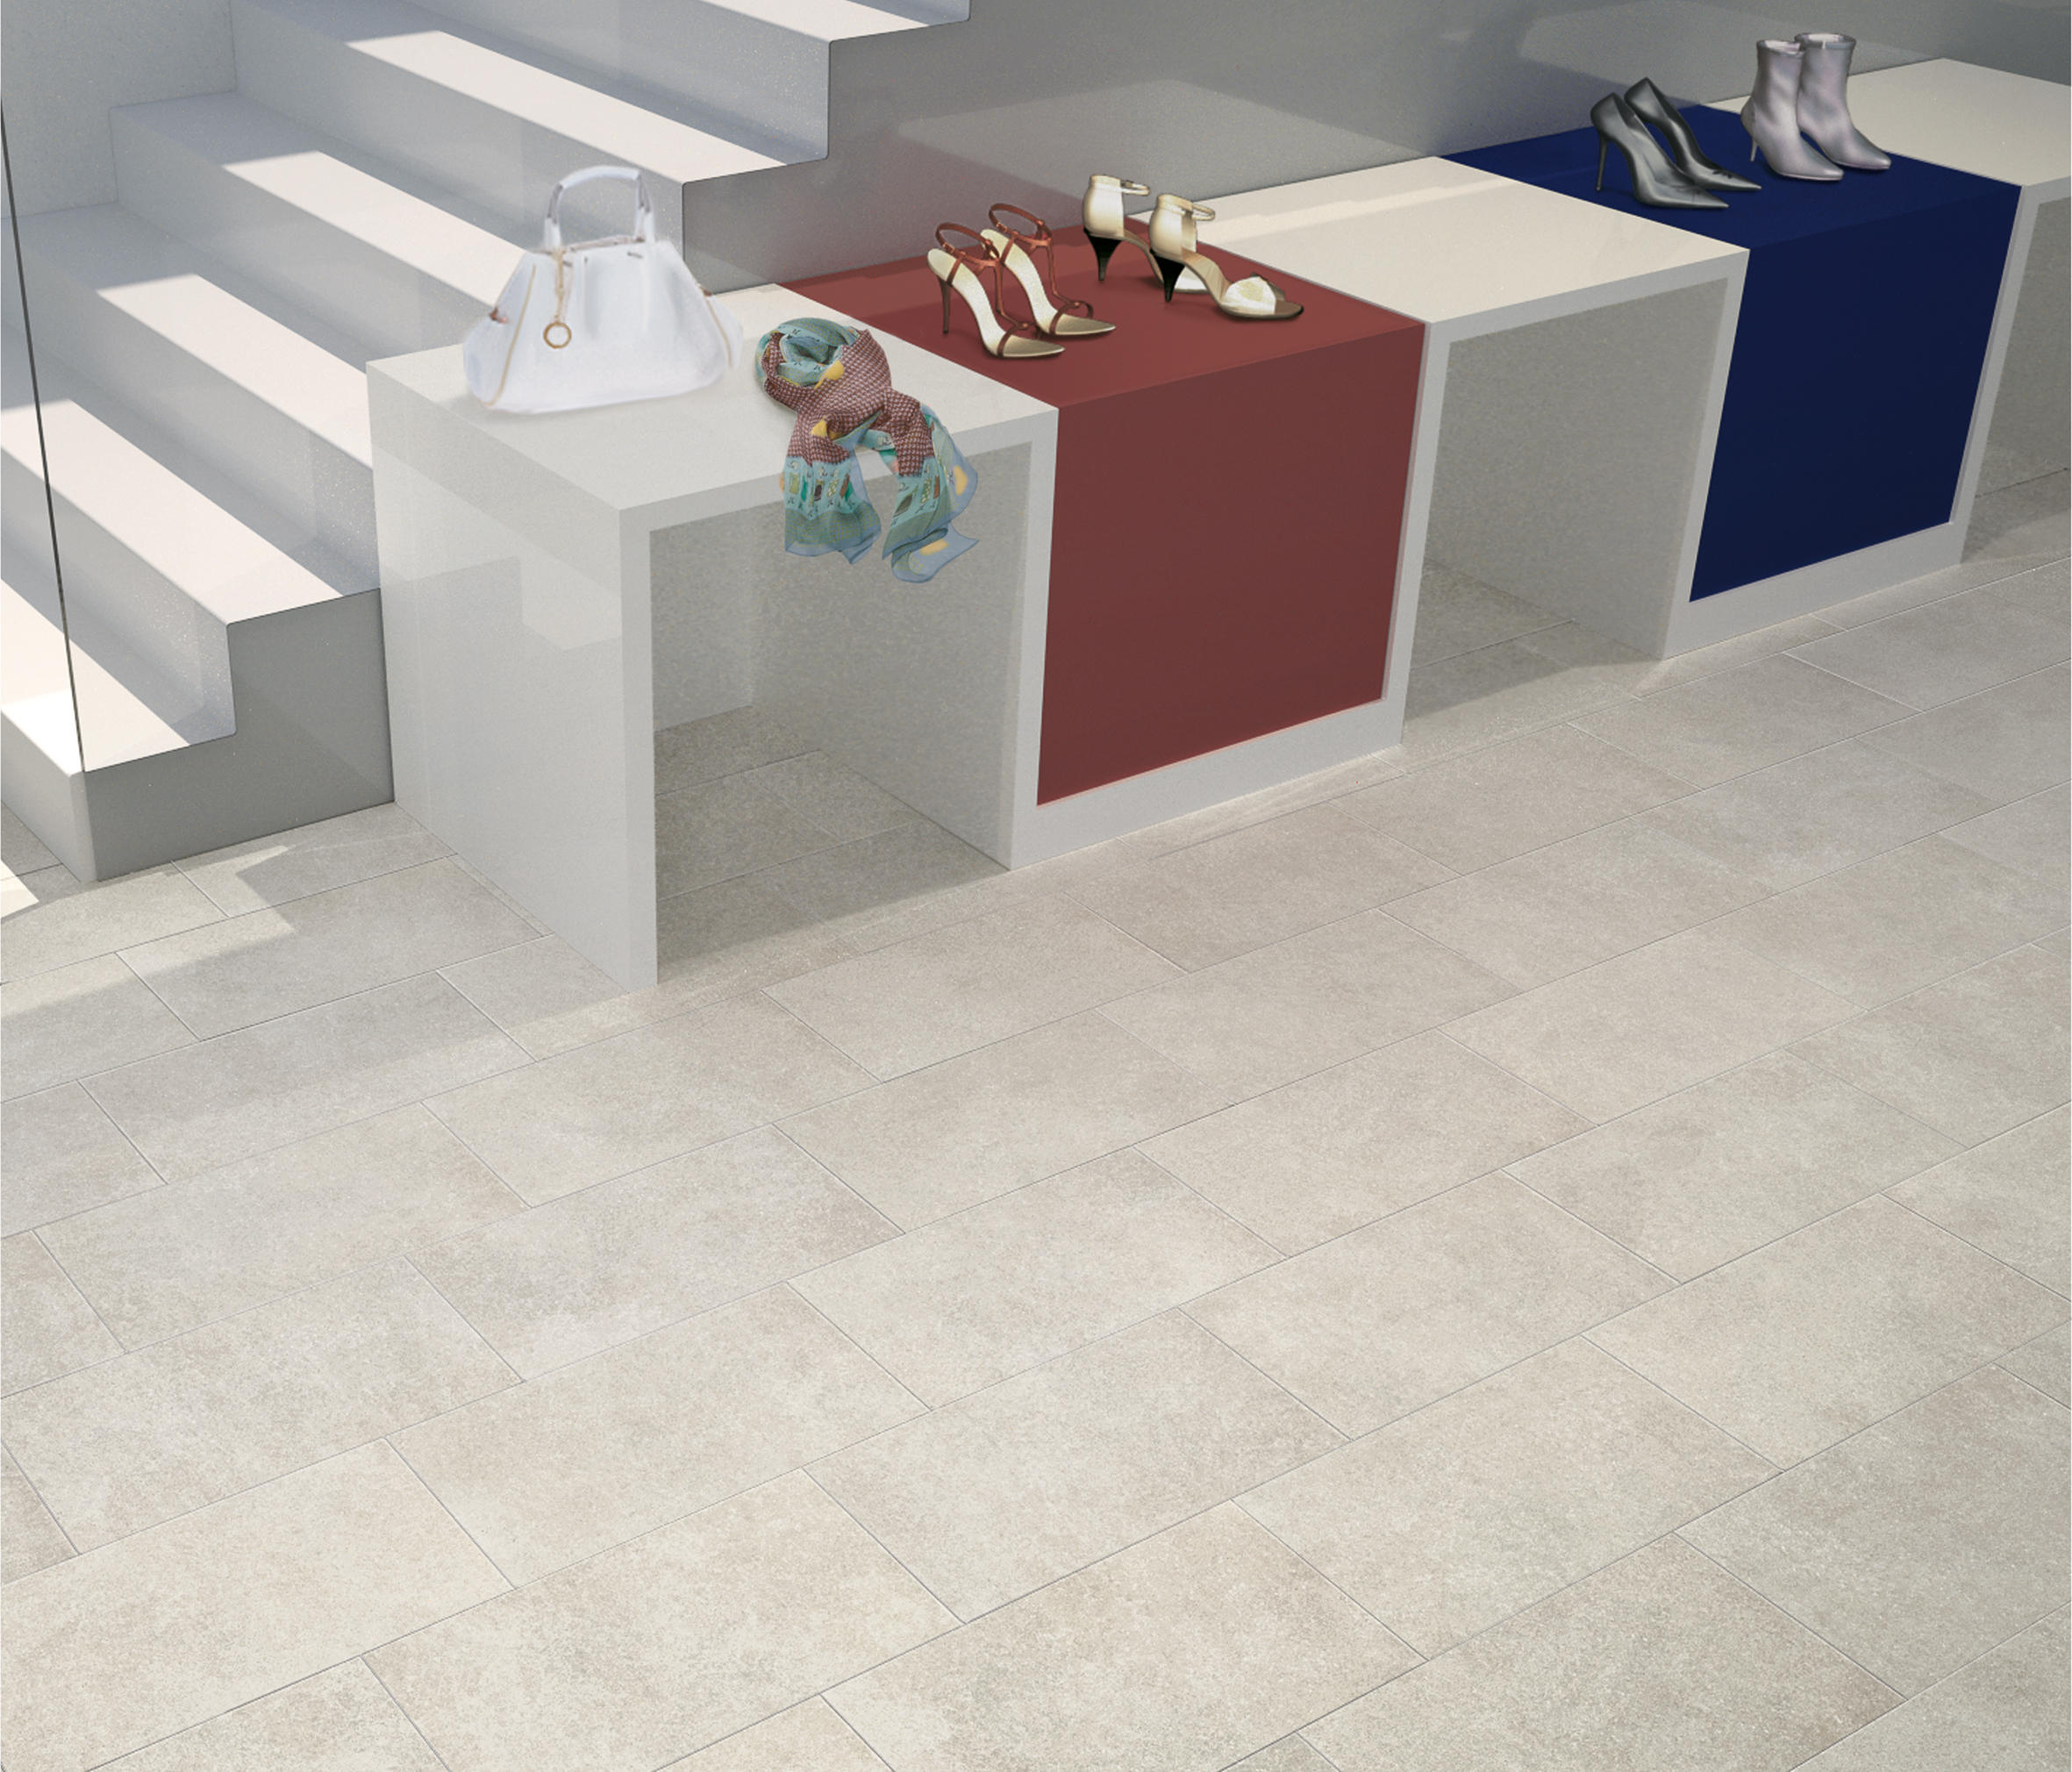 Ccs lithos carrelage pour sol de caesar architonic for Carrelage classe 4